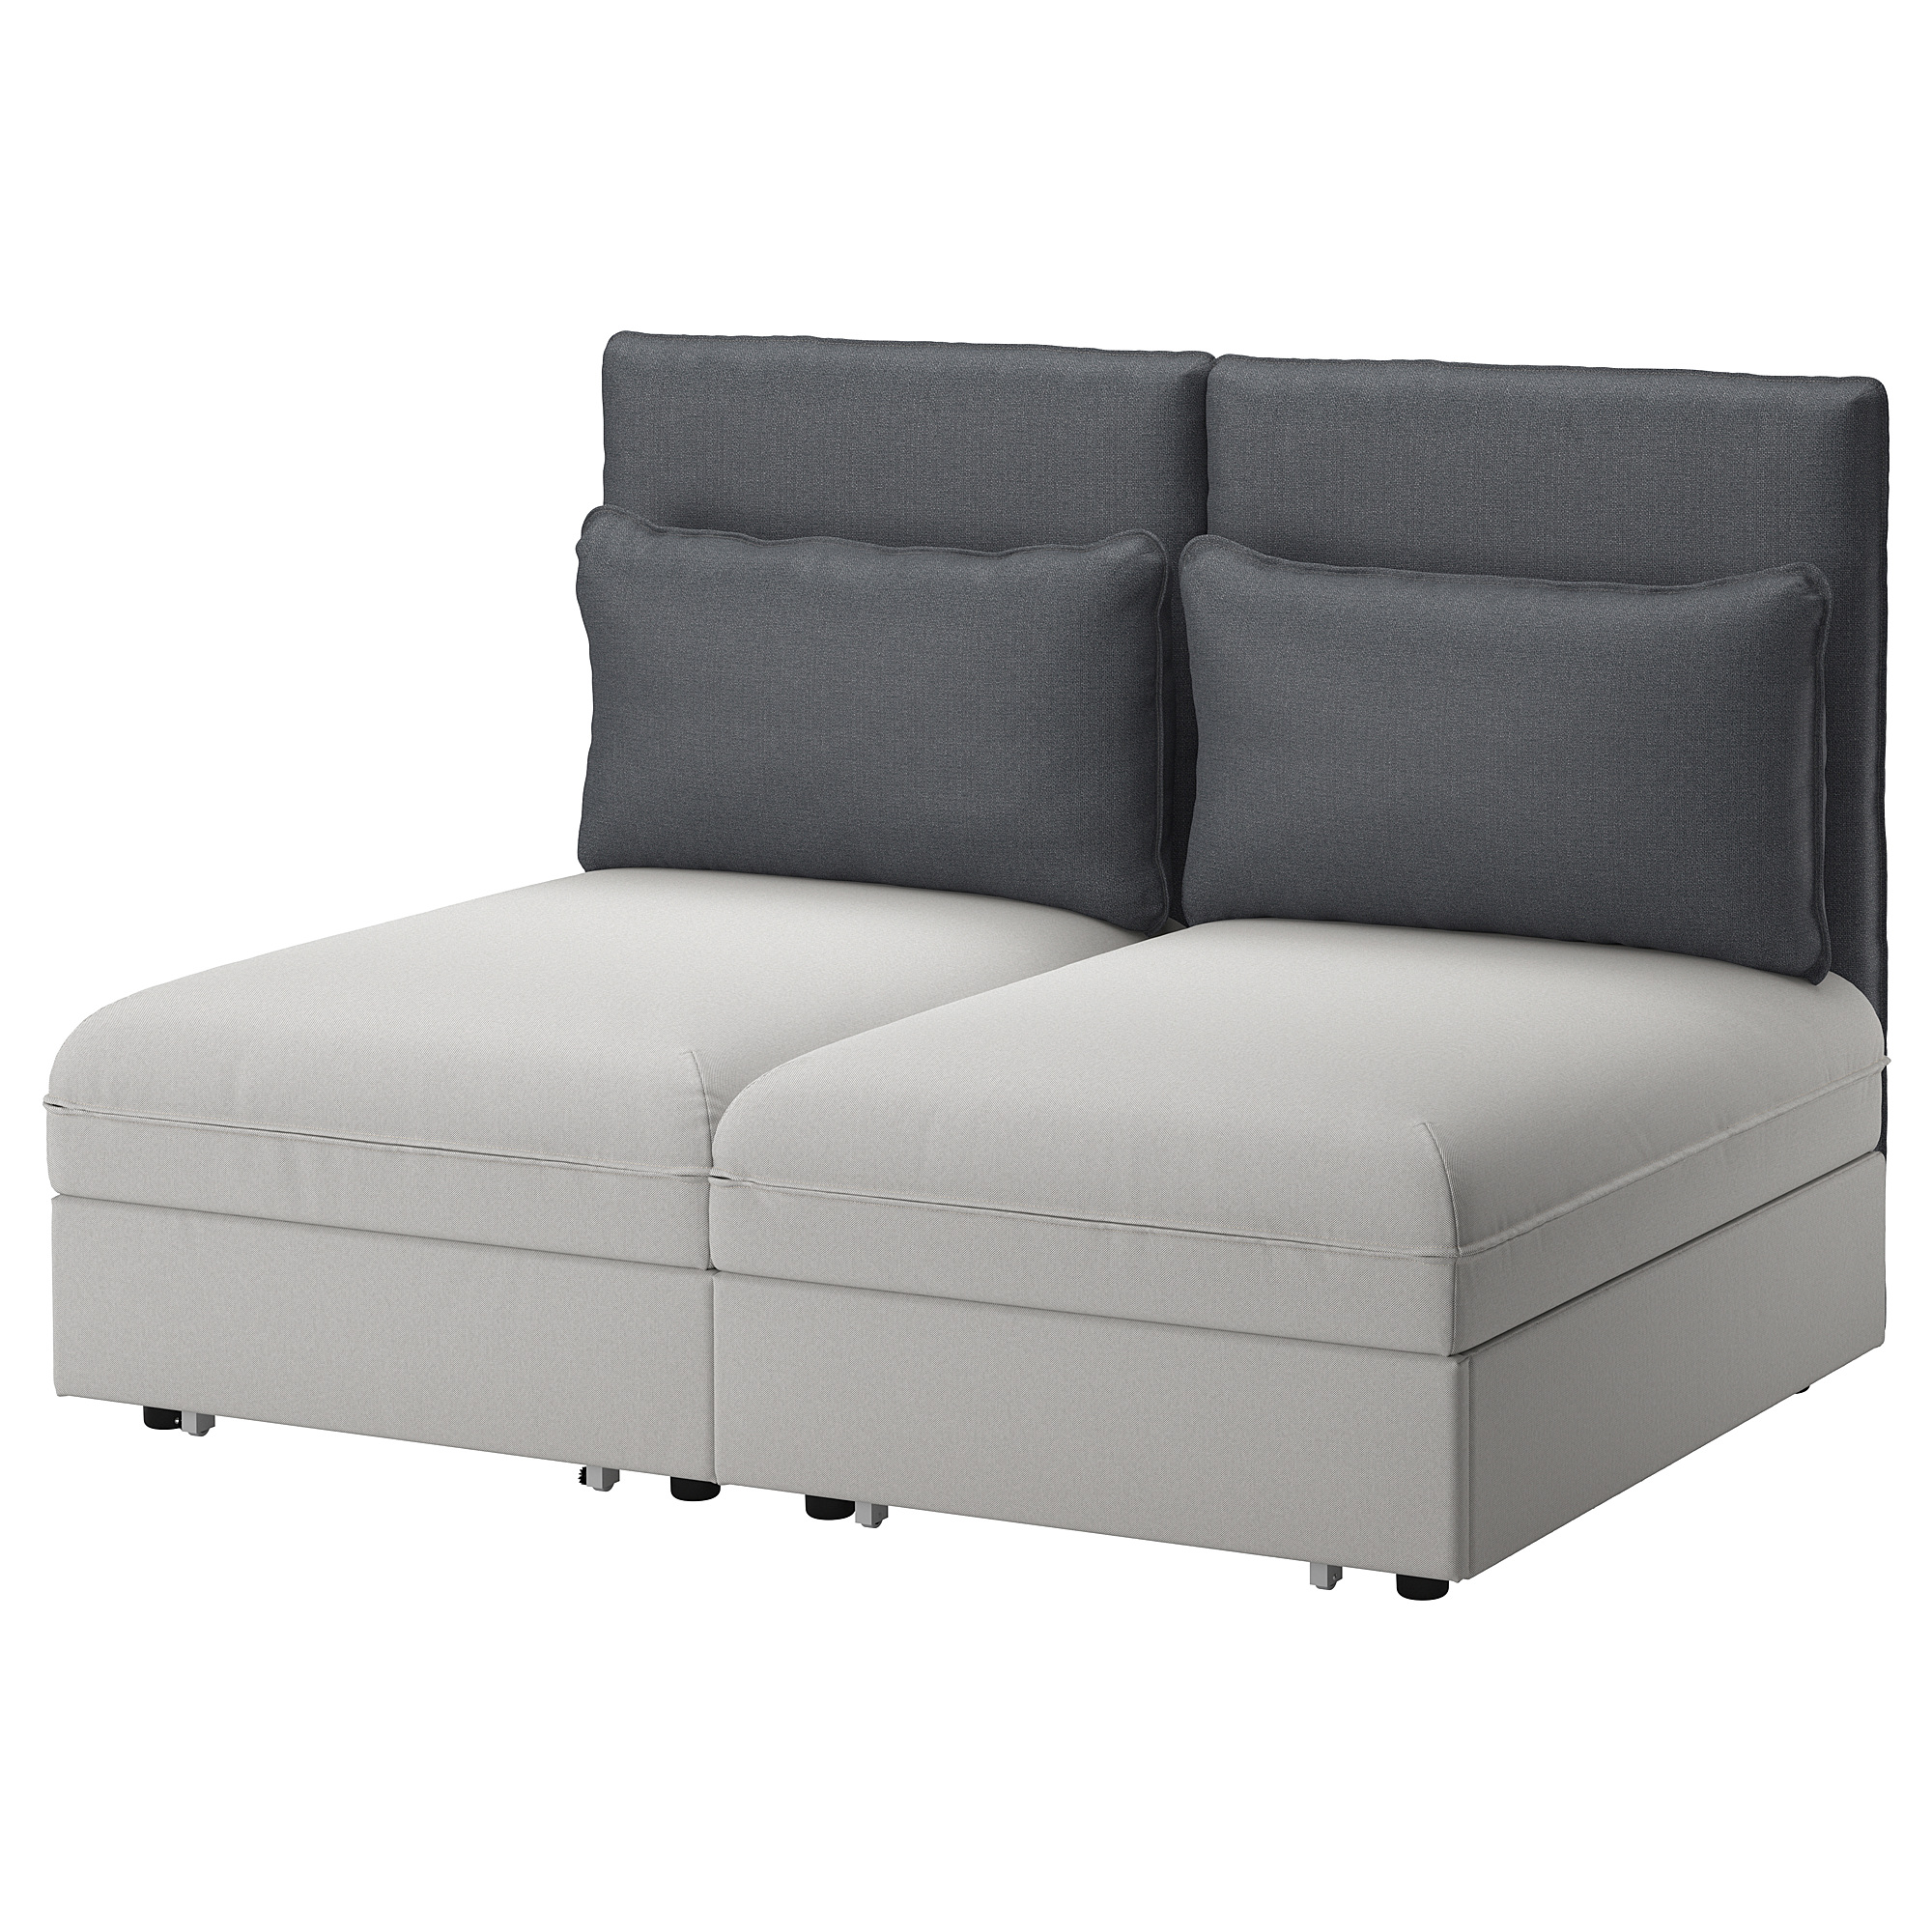 Sleeper sofas & Chair Beds IKEA